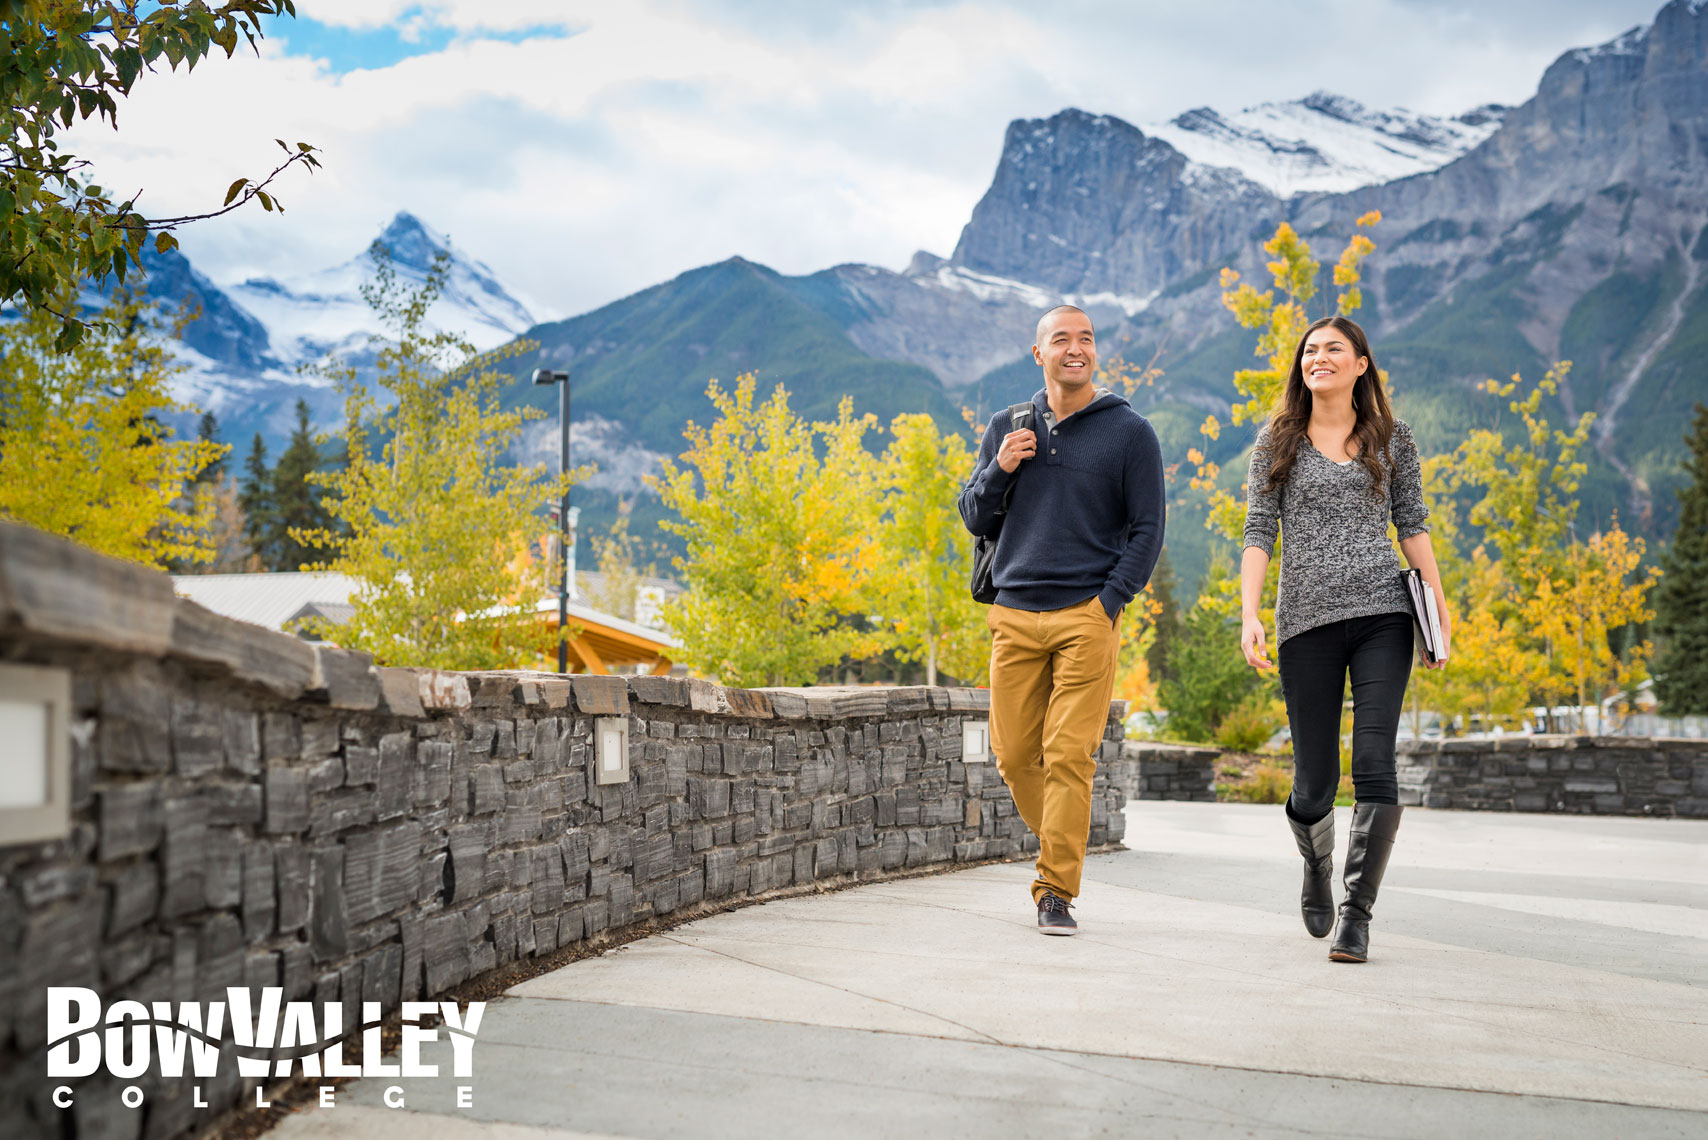 2016-09-23-BowValley-Canmore-907.jpg